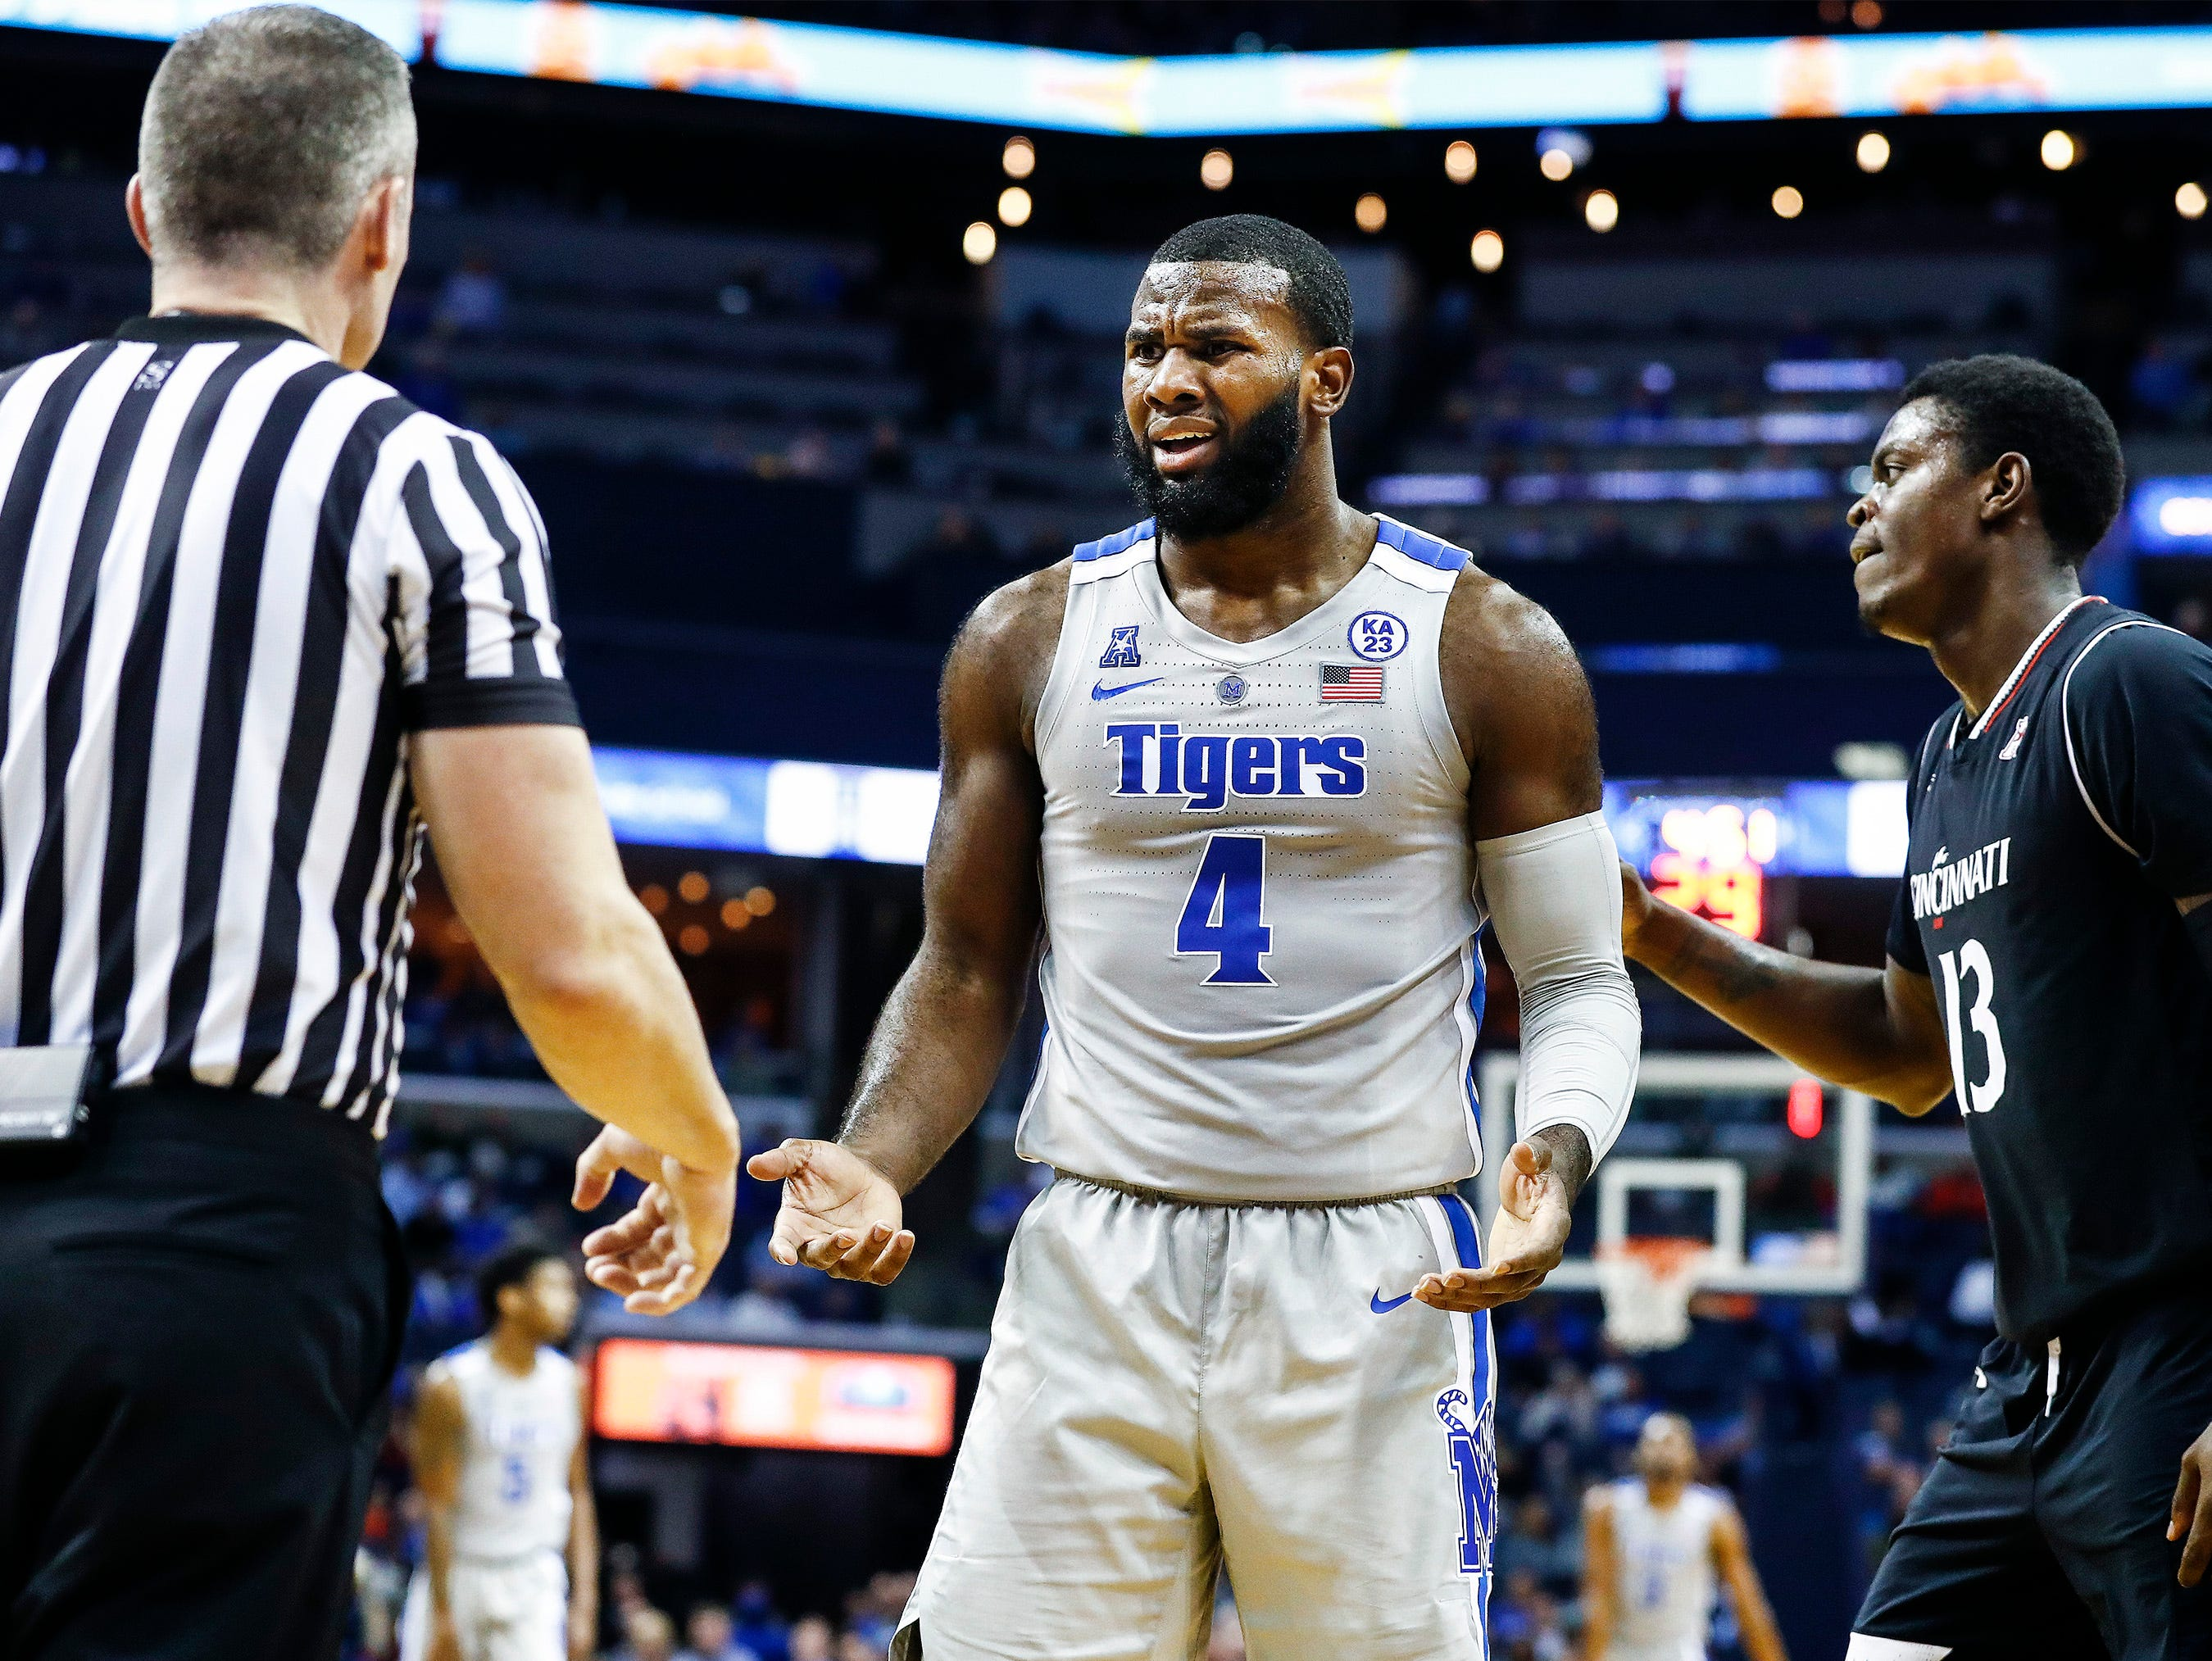 Memphis forward Raynere Thornton (middle) reacts after being called for a foul against Cincinnati during action at the FedExForum, Thursday, February 7, 2019.